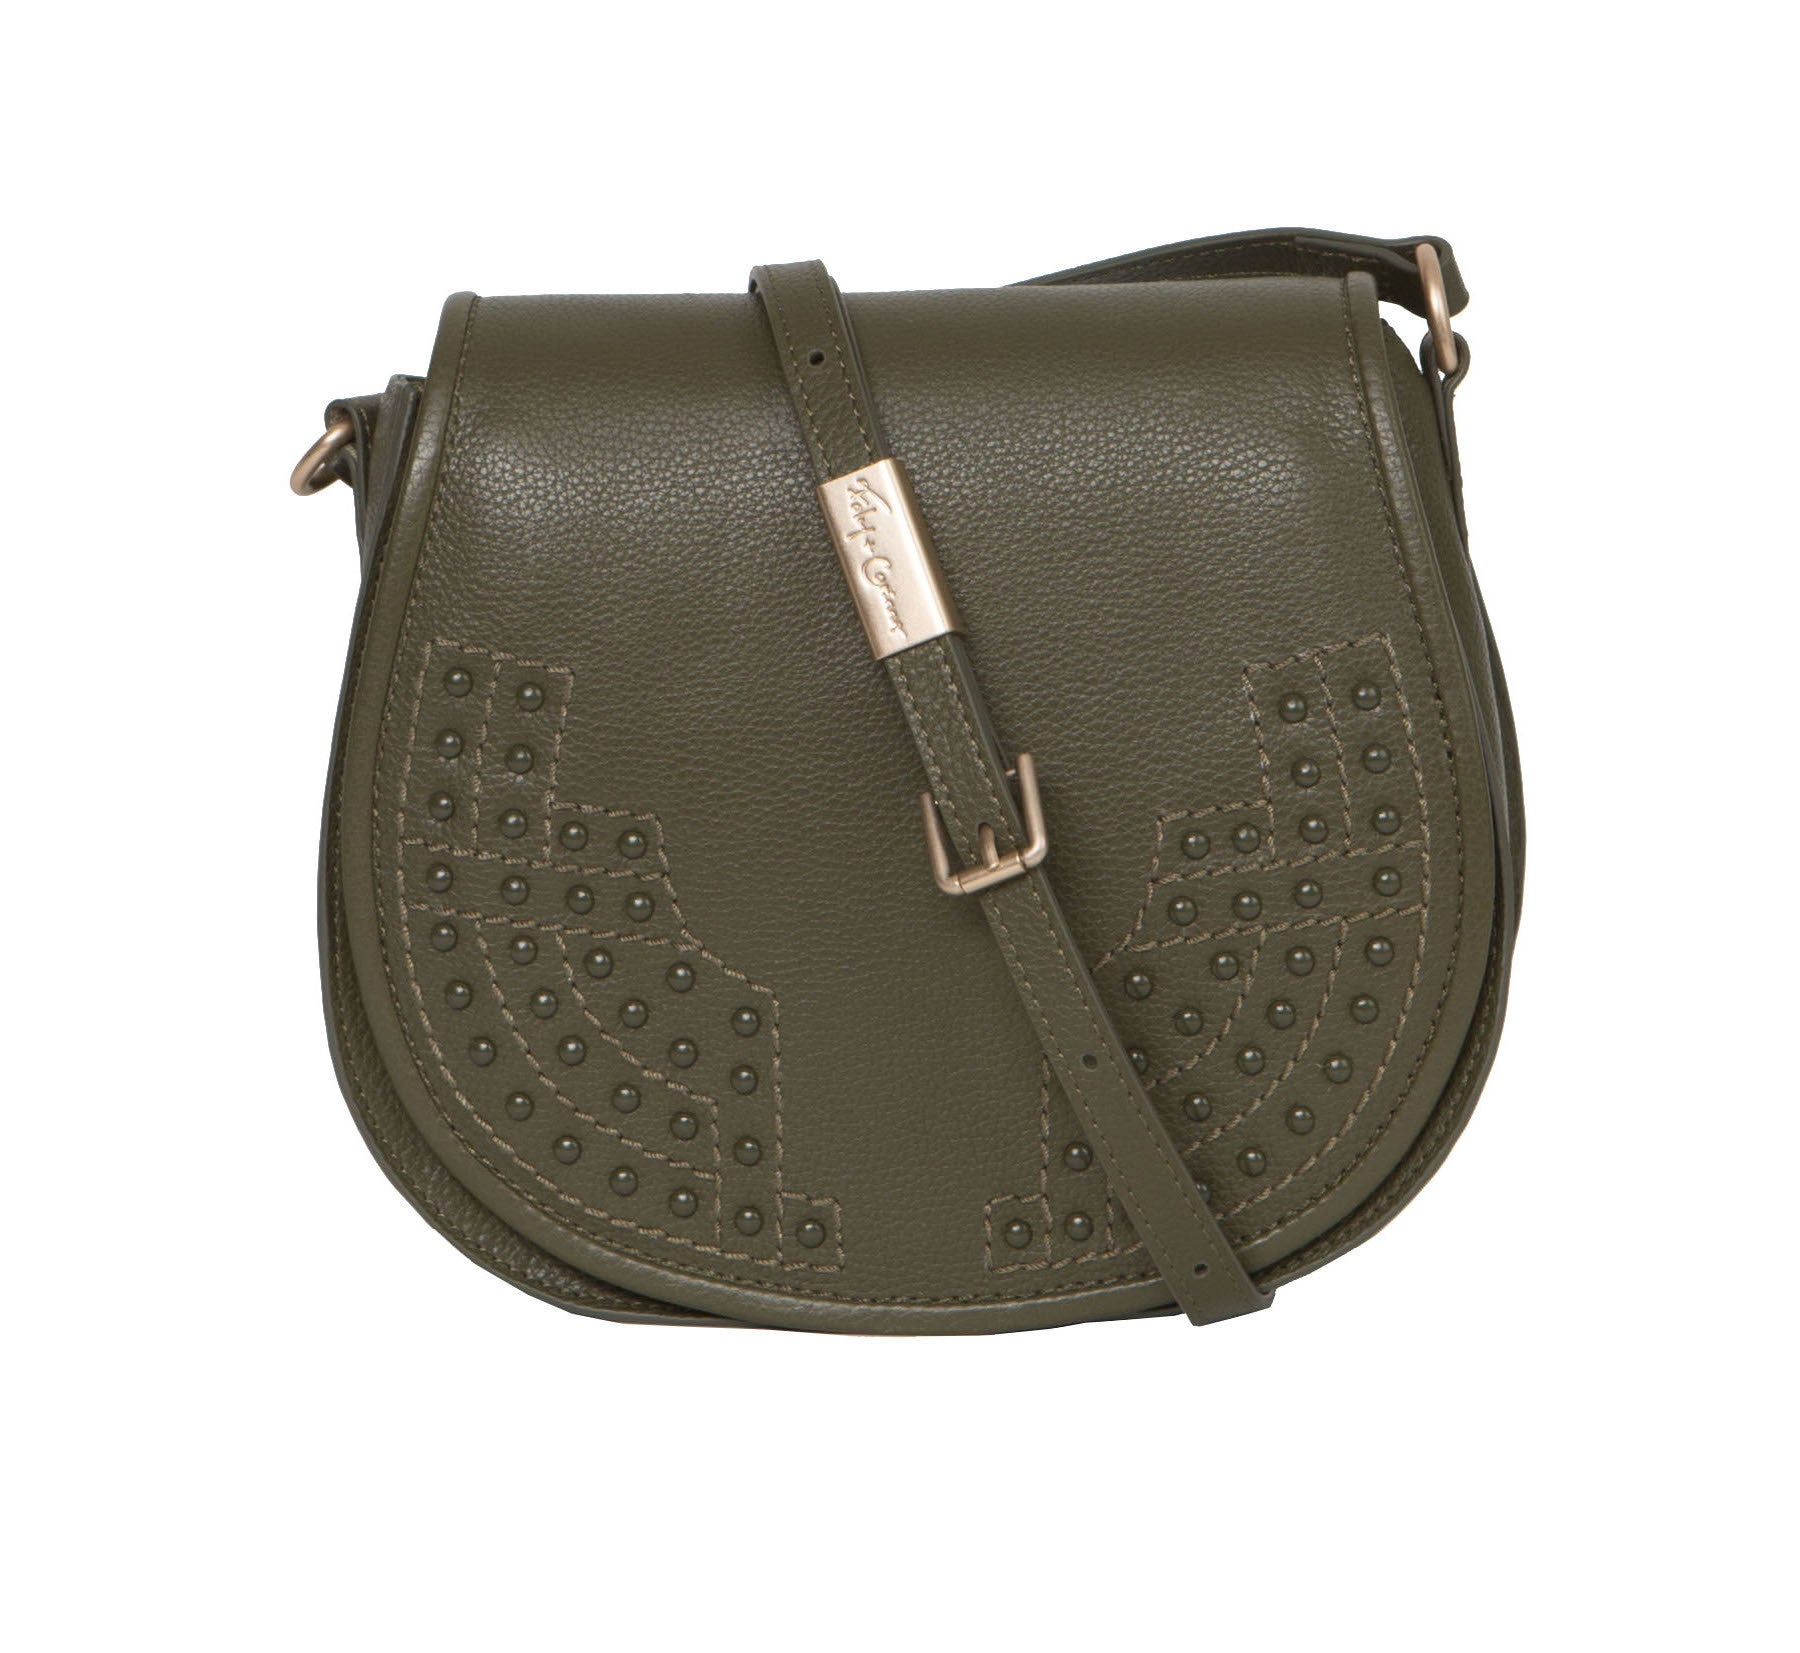 STEVIE SADDLE BAG IN MOSS